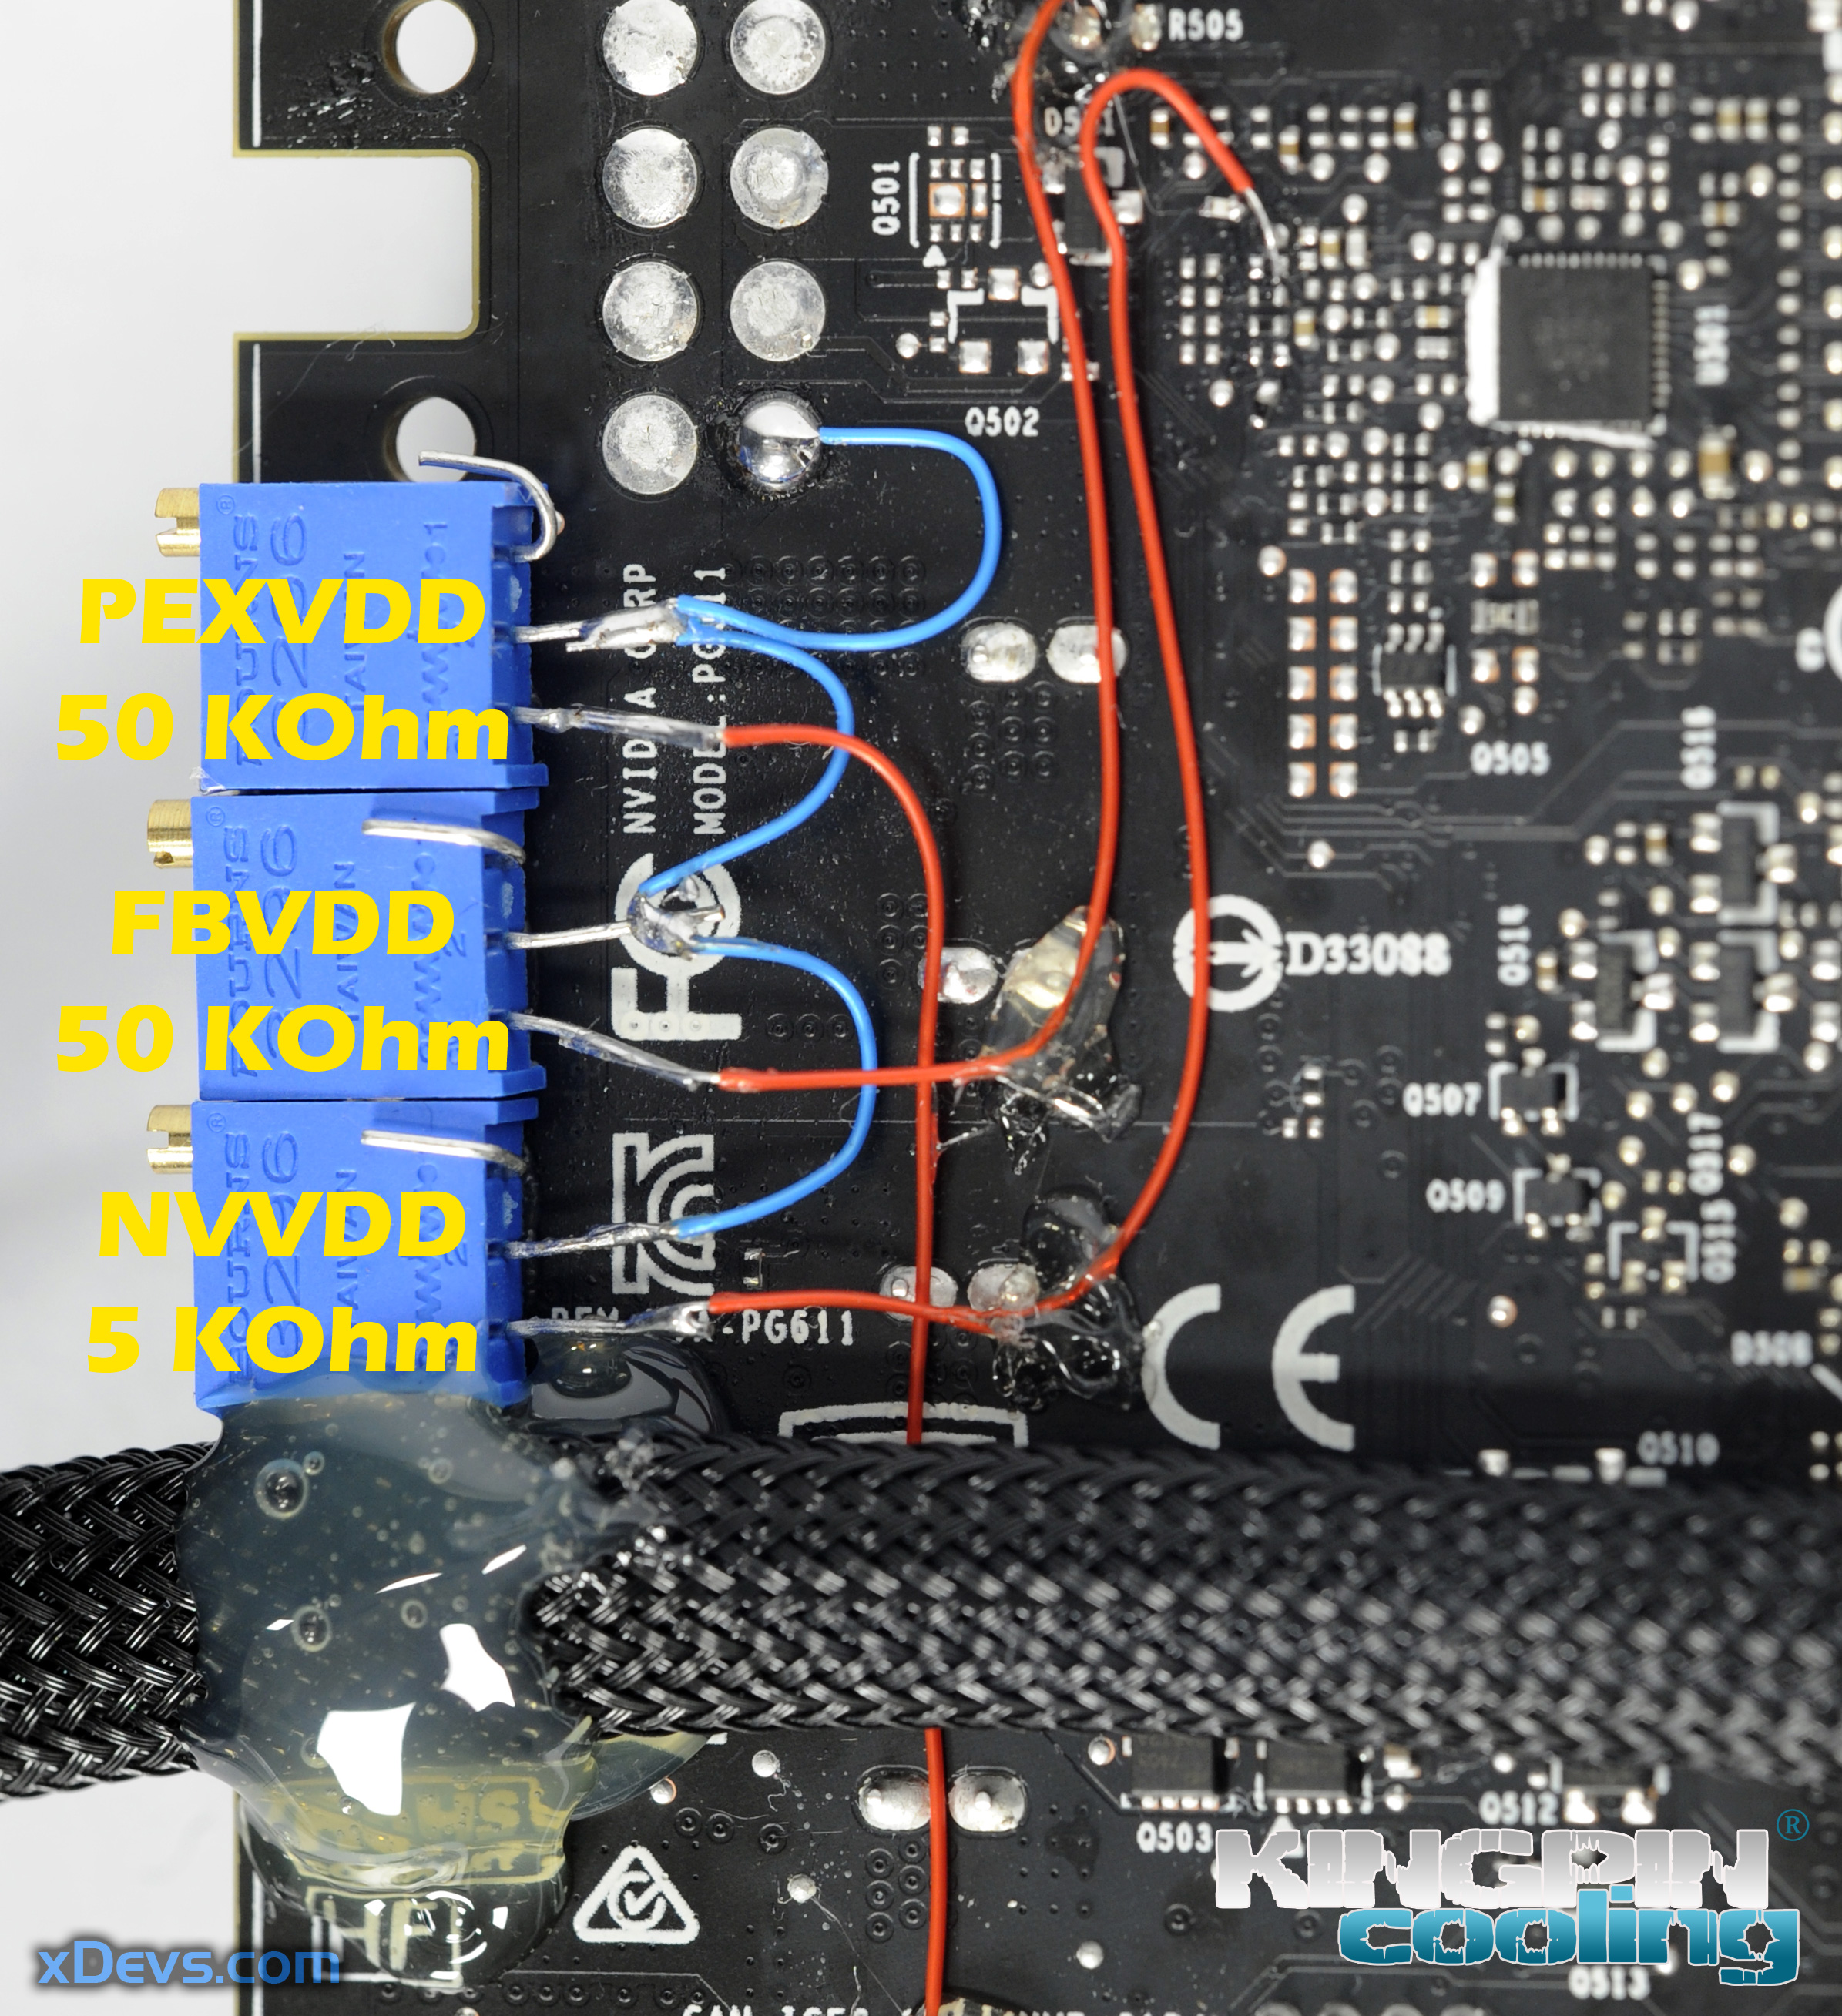 xDevs com | Extreme OC modifications for EVGA GeForce GTX 1080Ti FE